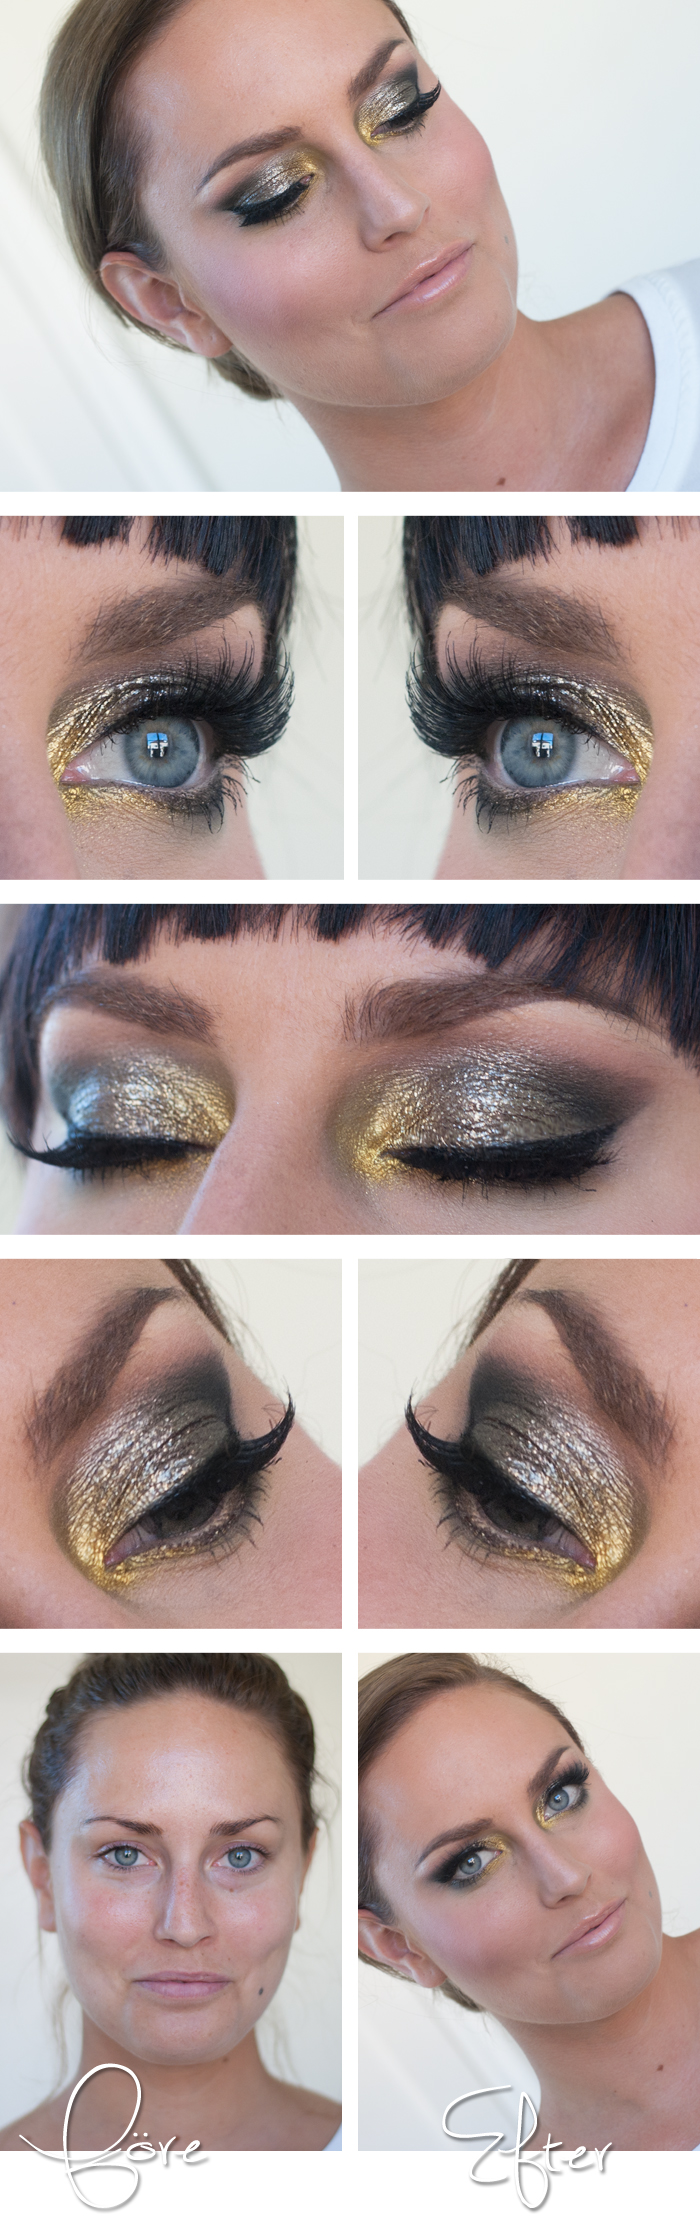 Todays look – Fridah I just love how Linda does brows... amazing... the model girl has amazing eyes and face